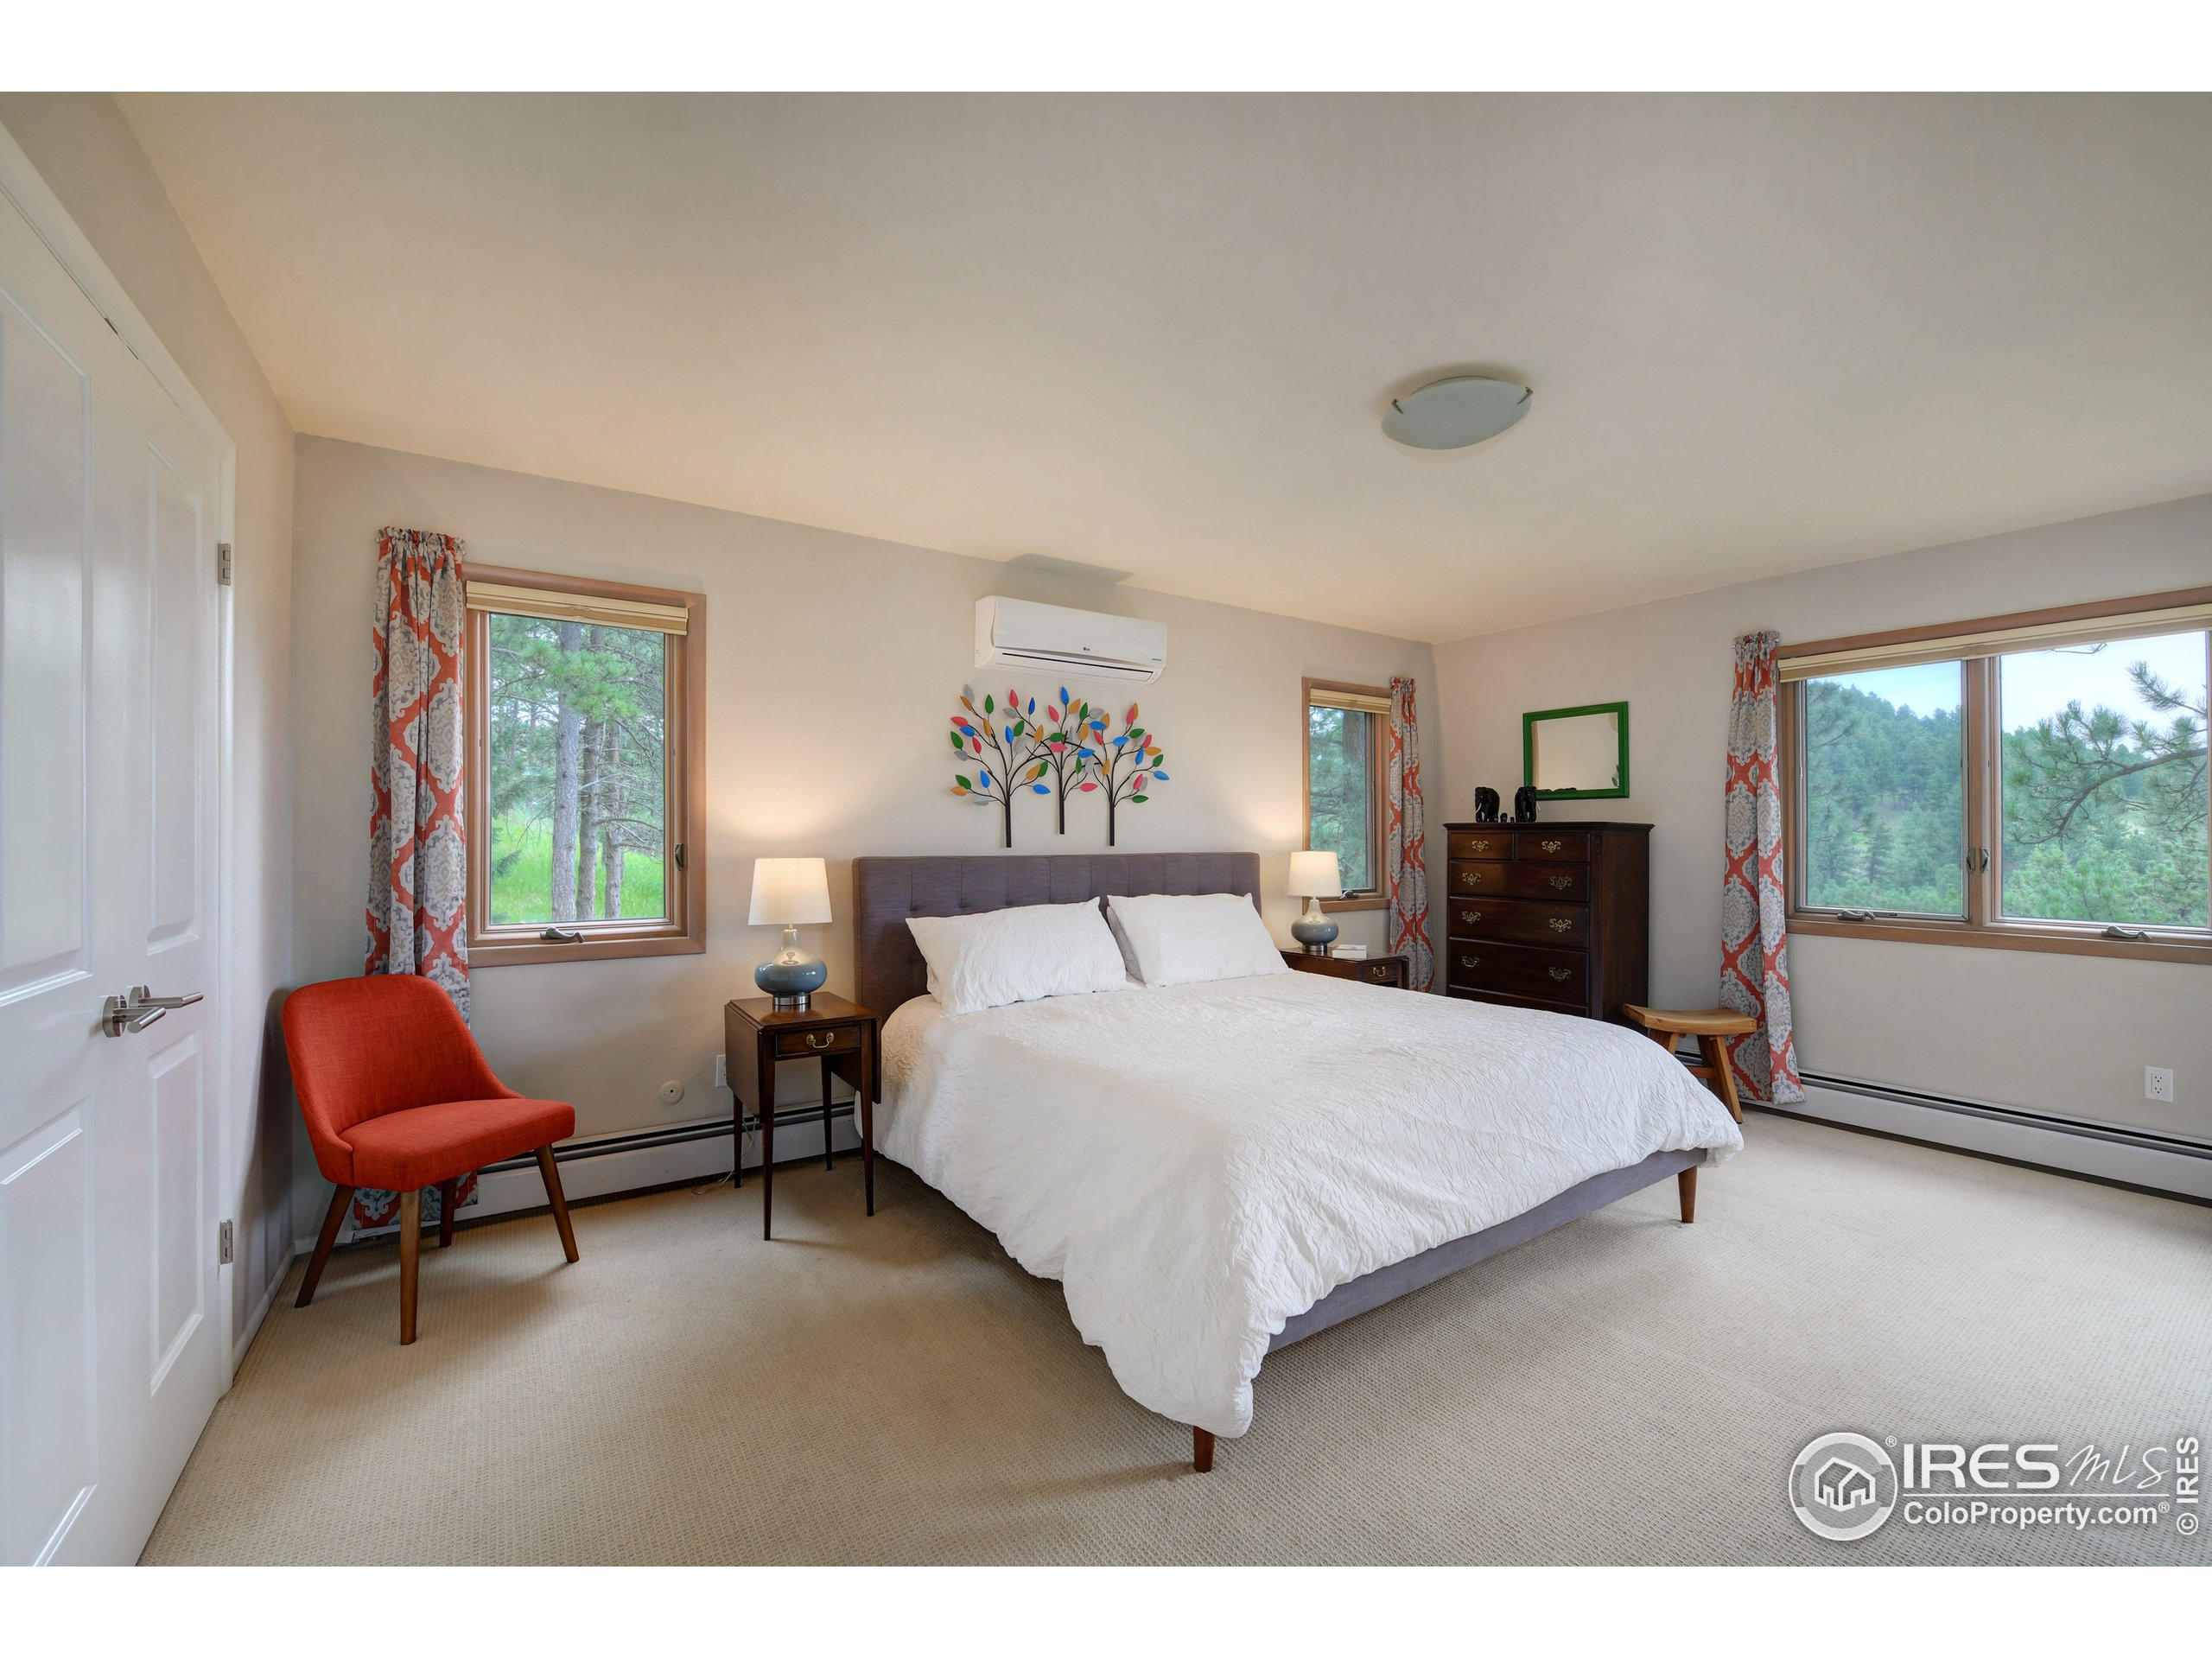 Primary suite, surrounded by pines